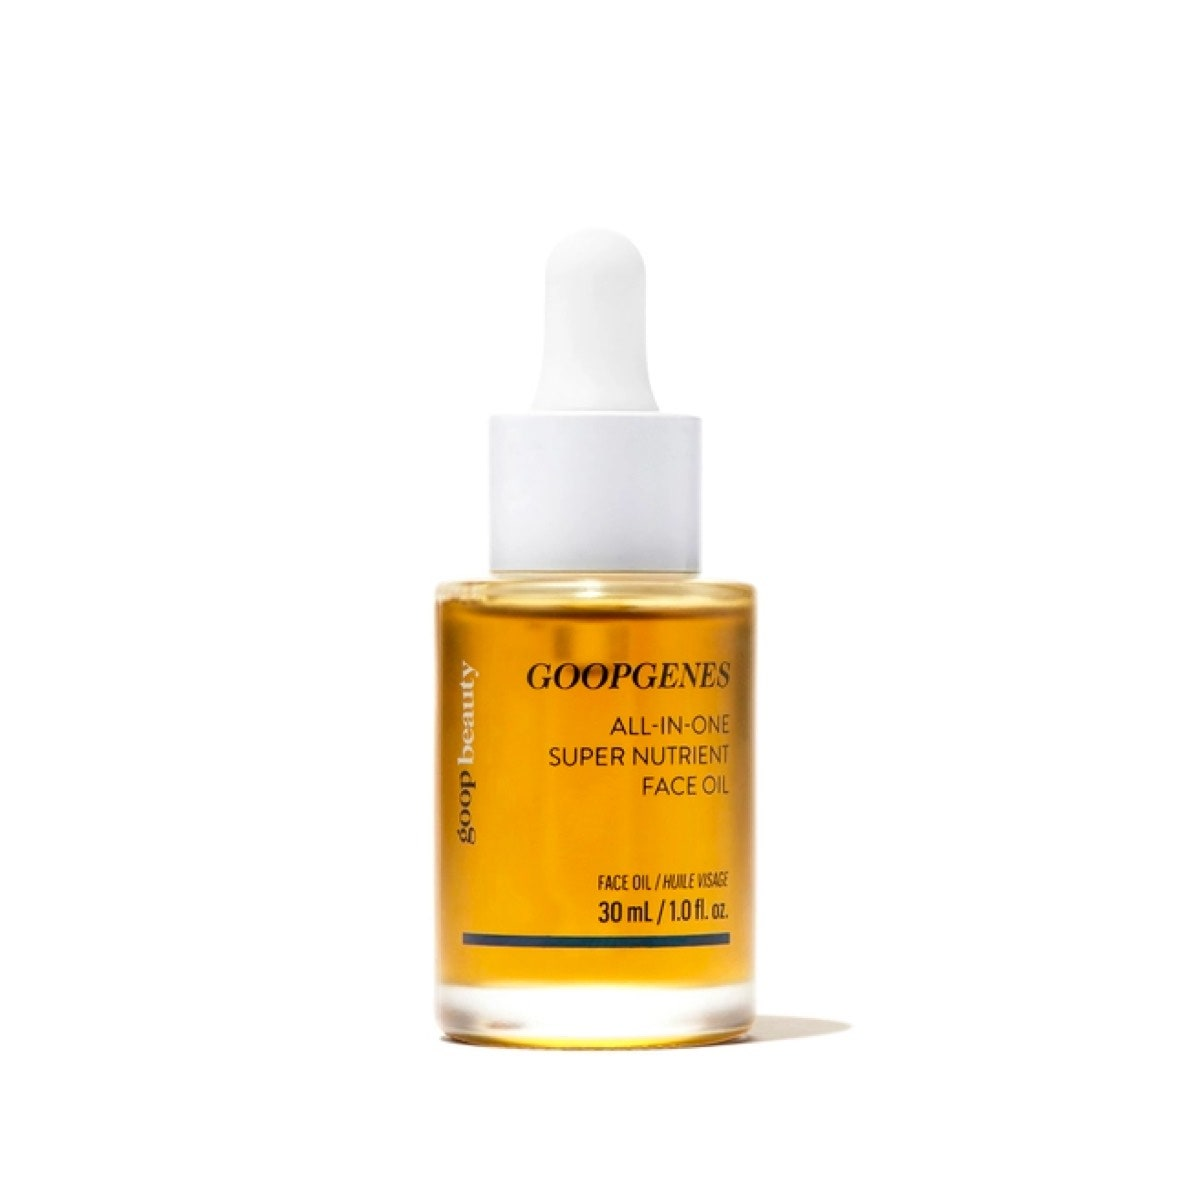 Goopgenes All-in-One Super Nutrient Face Oil